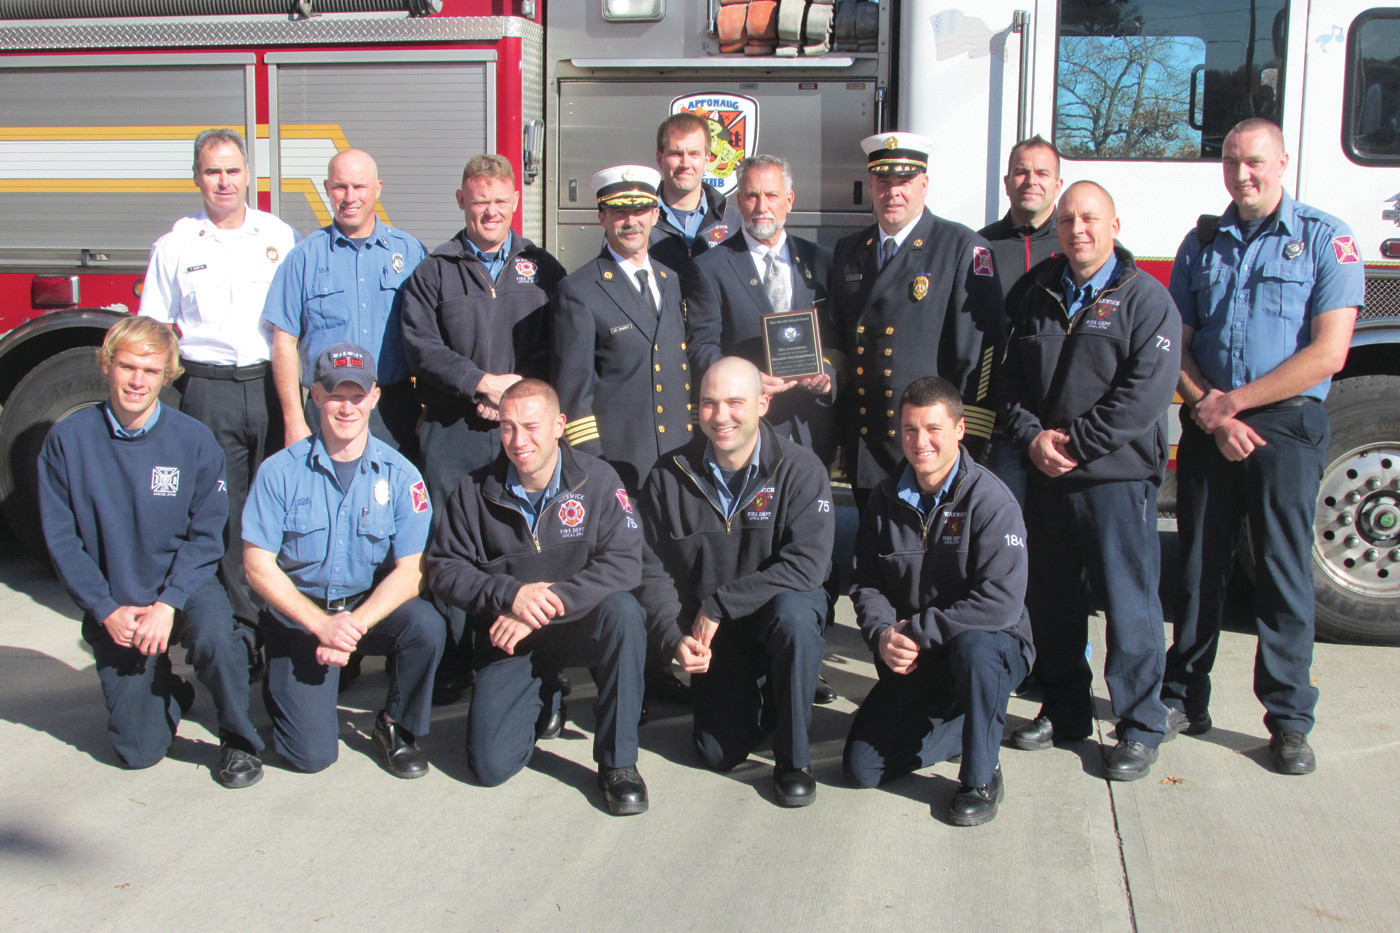 Elks say thanks to WFD for help with outing for special needs